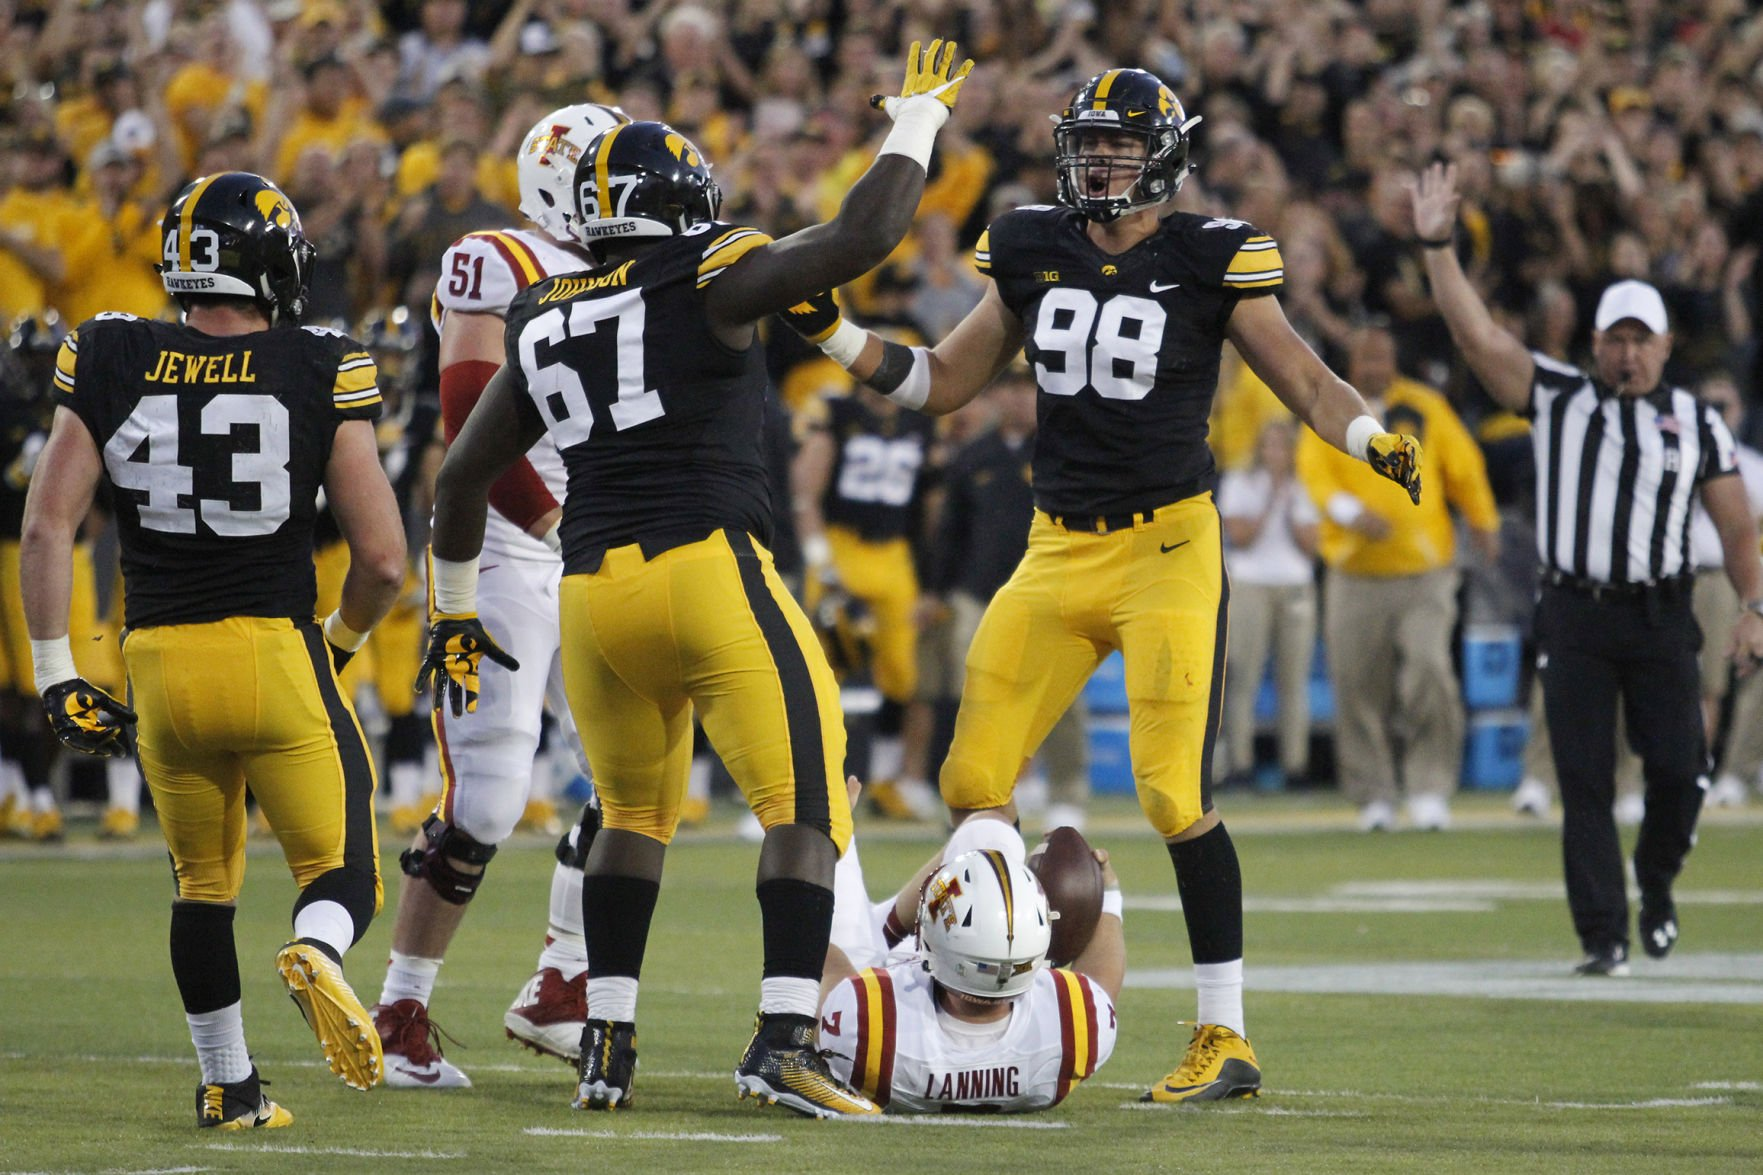 Hawkeyes come back to beat Iowa State in overtime